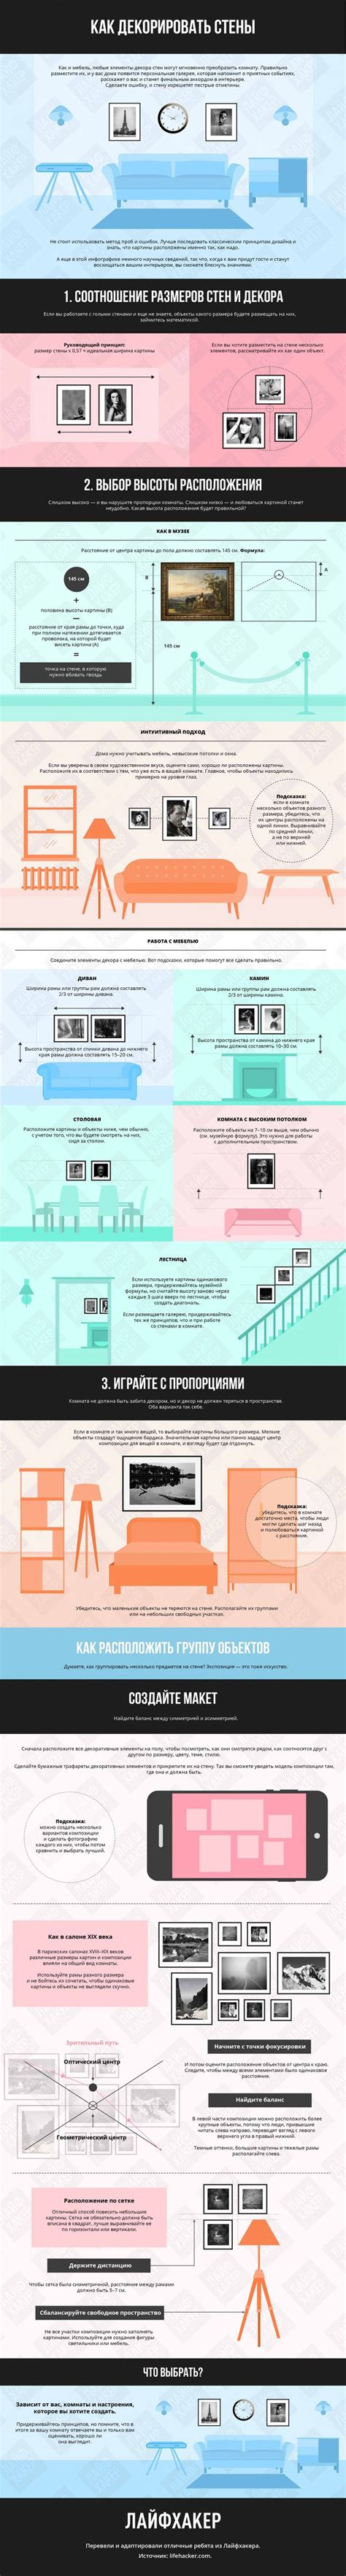 infographic wall 150 best images about infographic s on pinterest